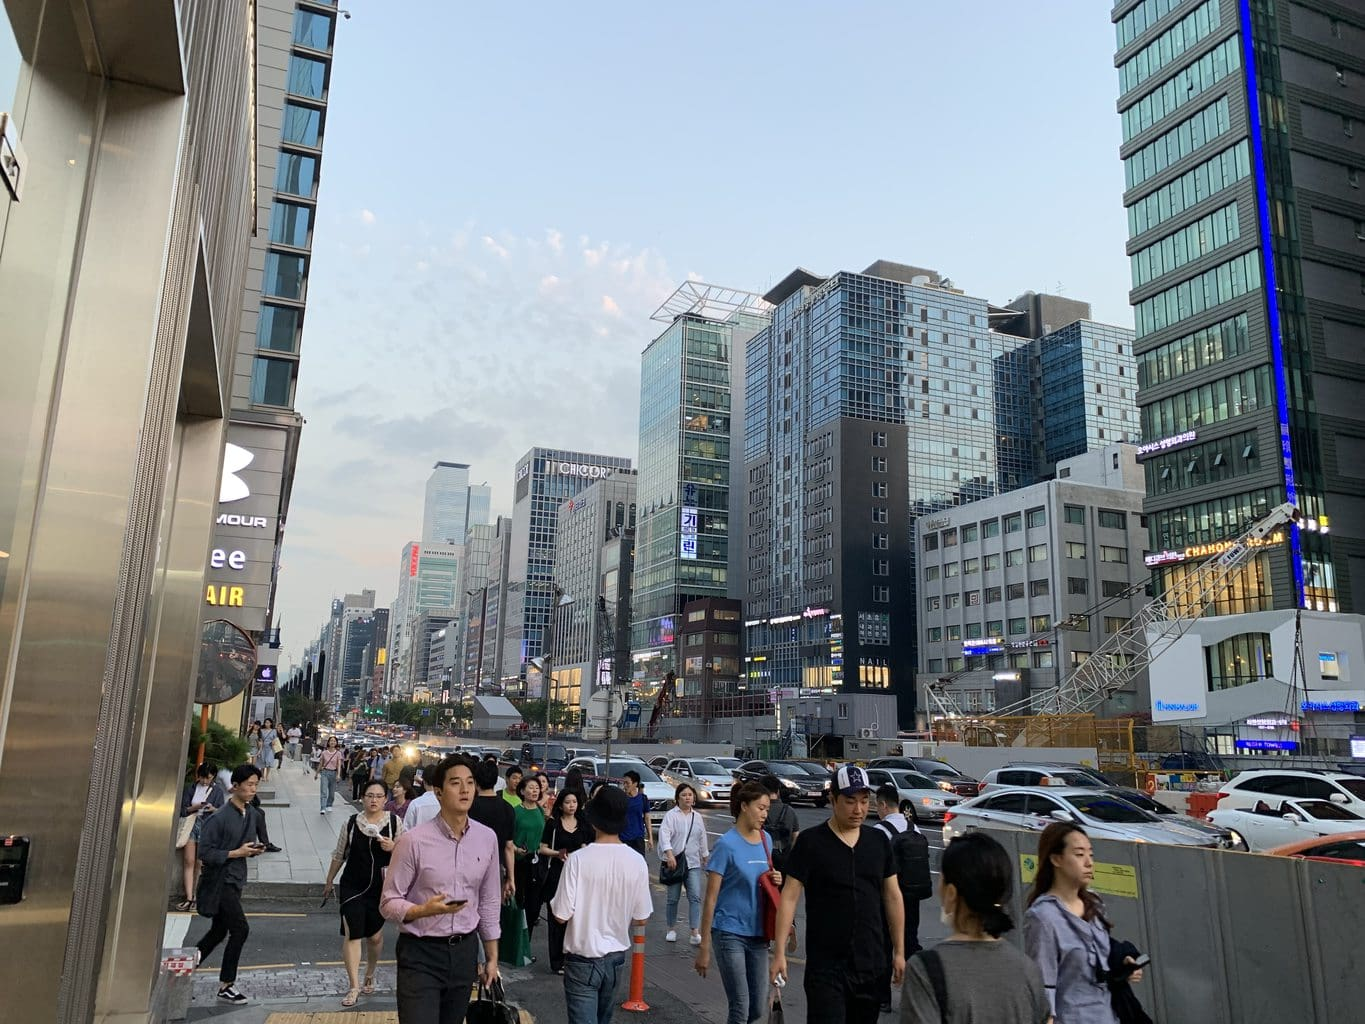 The most complete list of things to do in Seoul, attractions